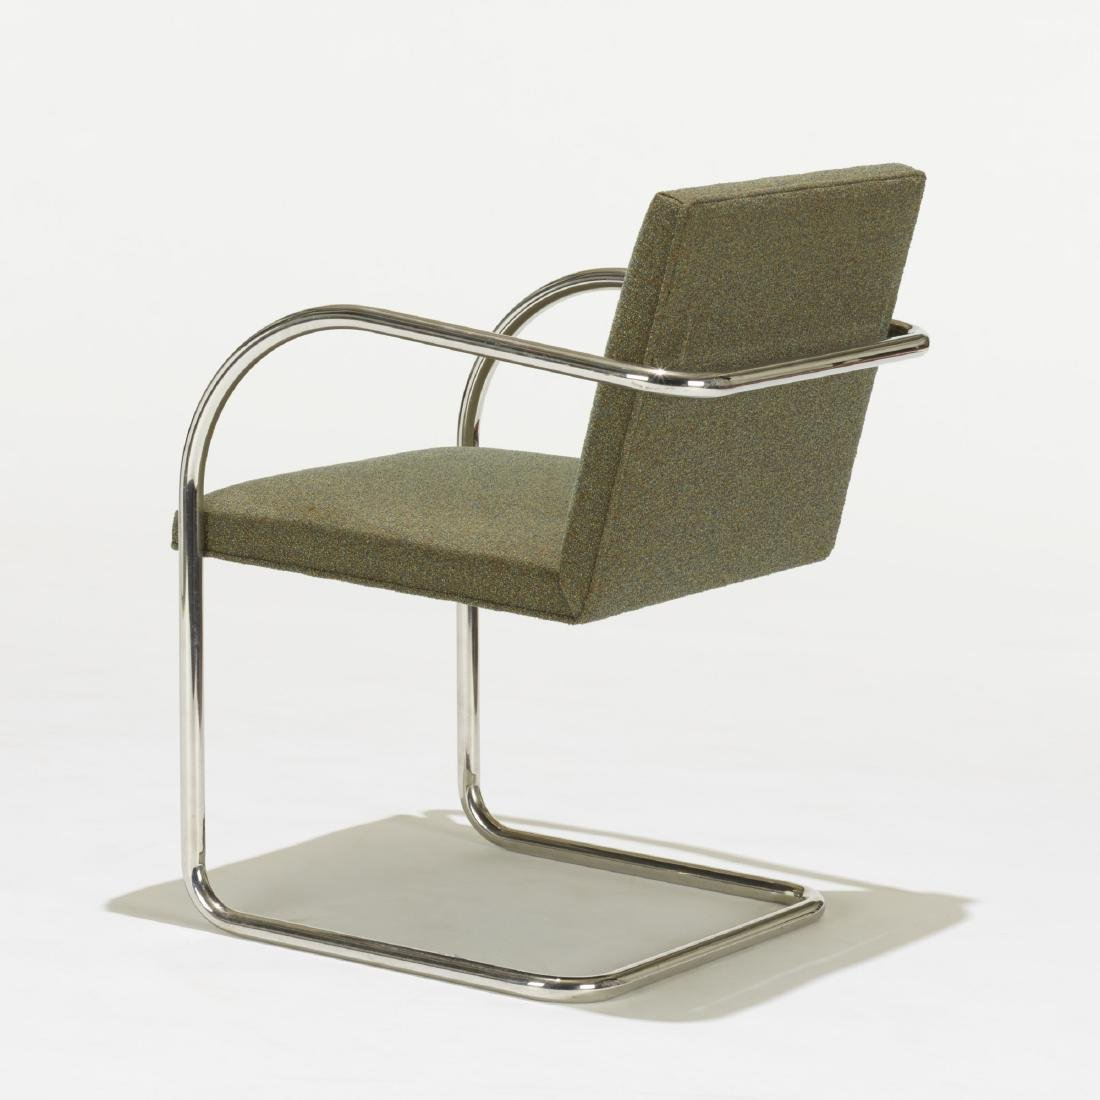 Ludwig Mies van der Rohe, Brno chairs, pair - 3